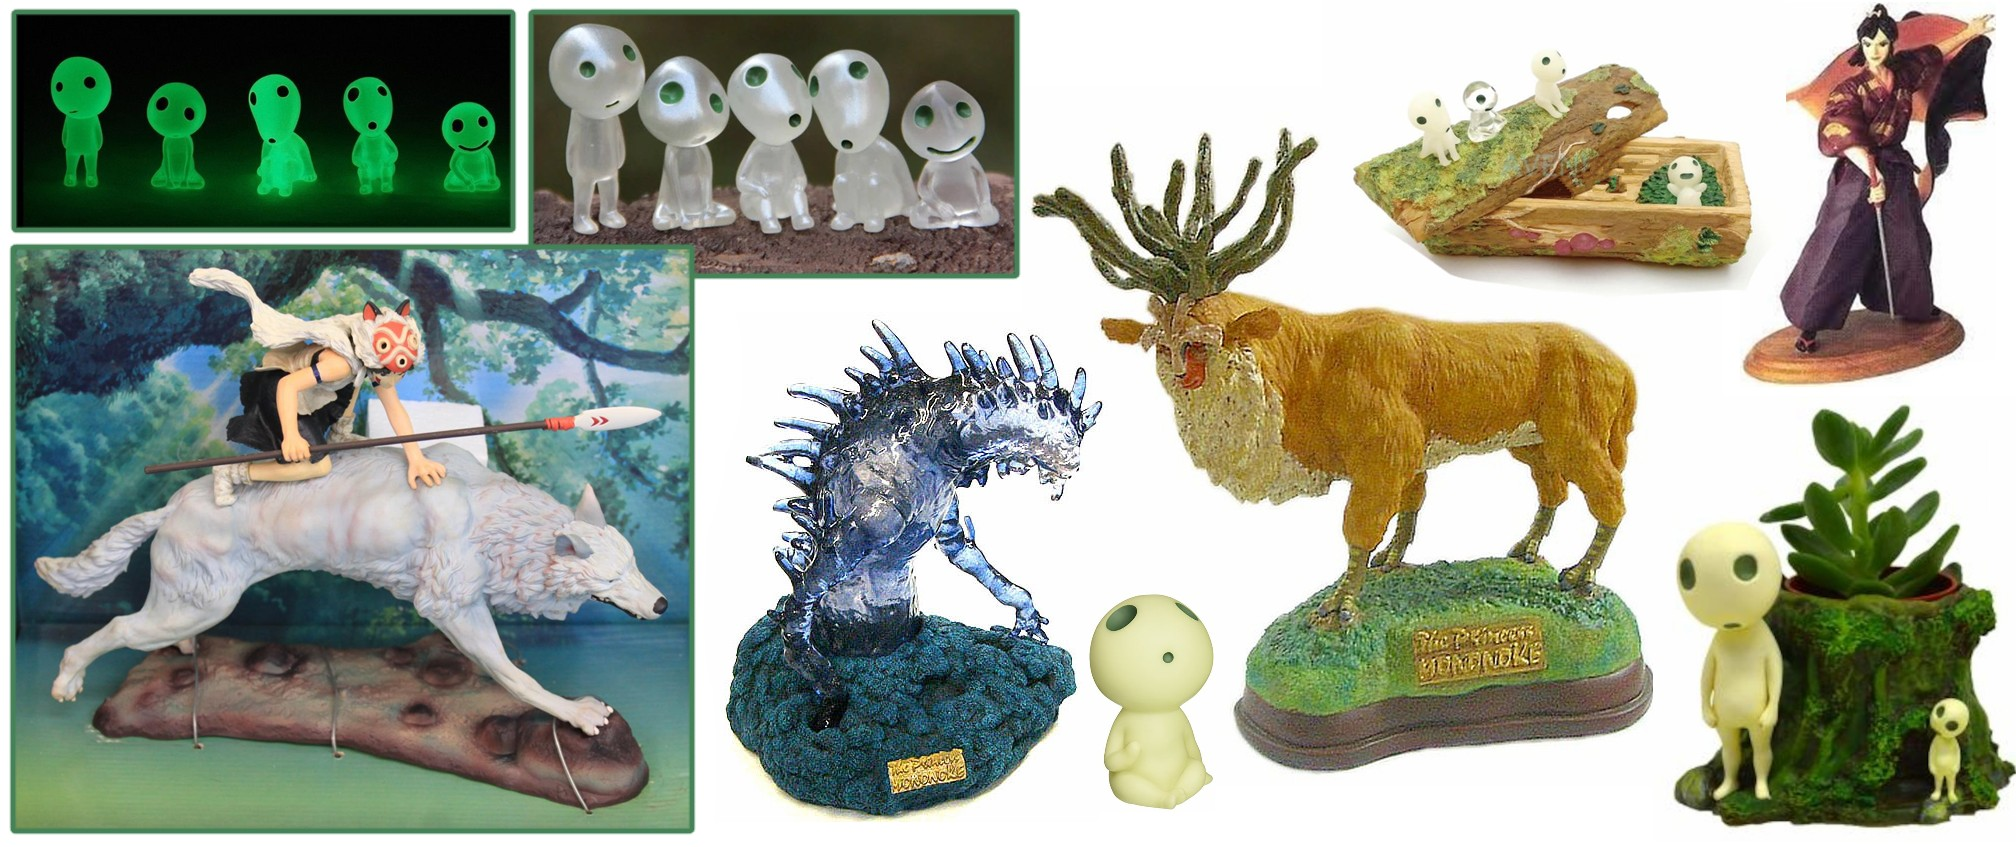 Princess Mononoke Figurines